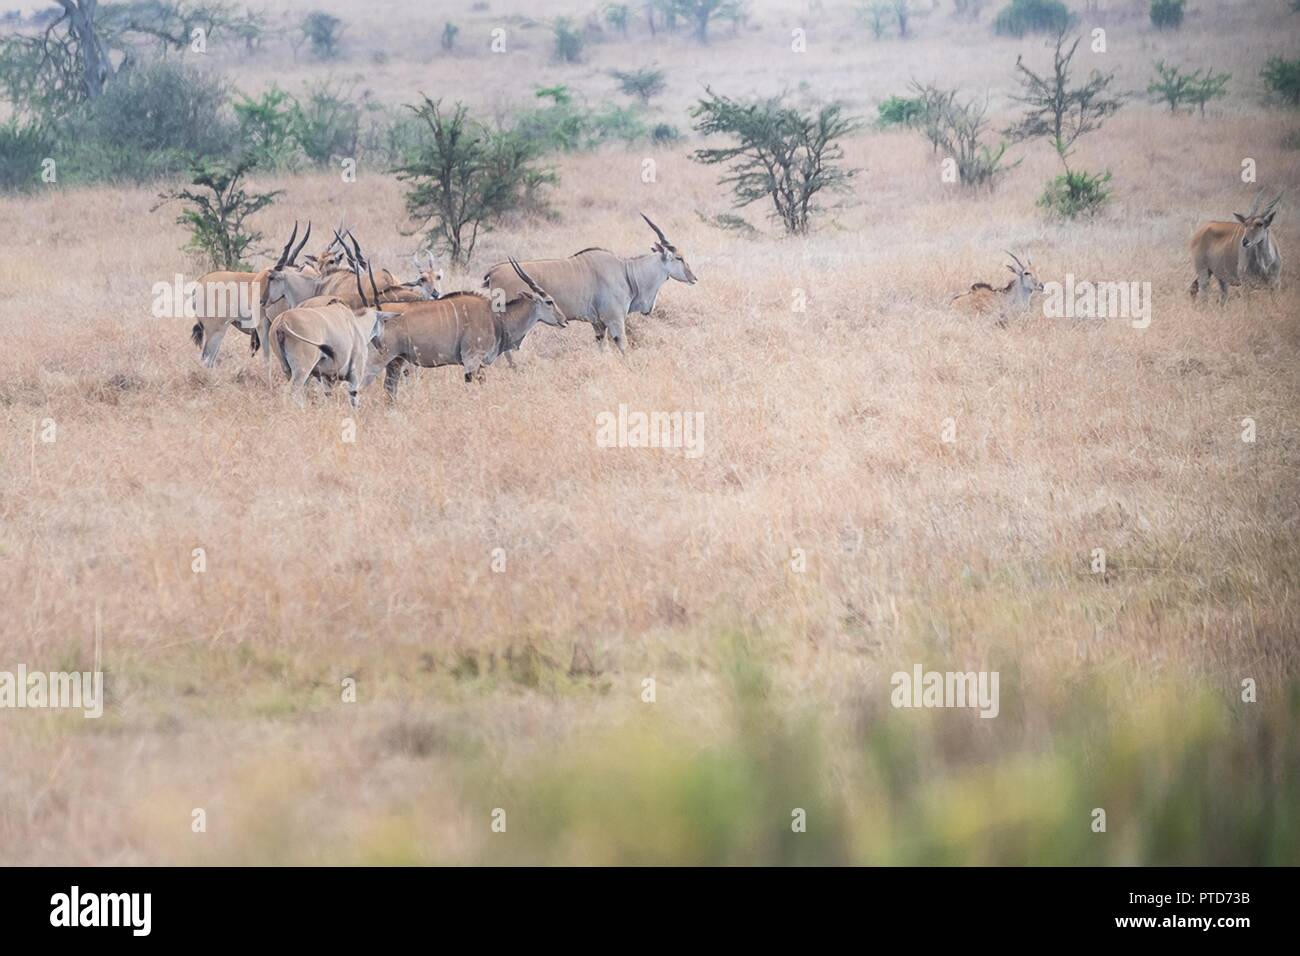 8e9b6ae521b Antelopes in the grasslands of Nairobi National Park seen during the safari  tour of U.S First Lady Melania Trump October 5